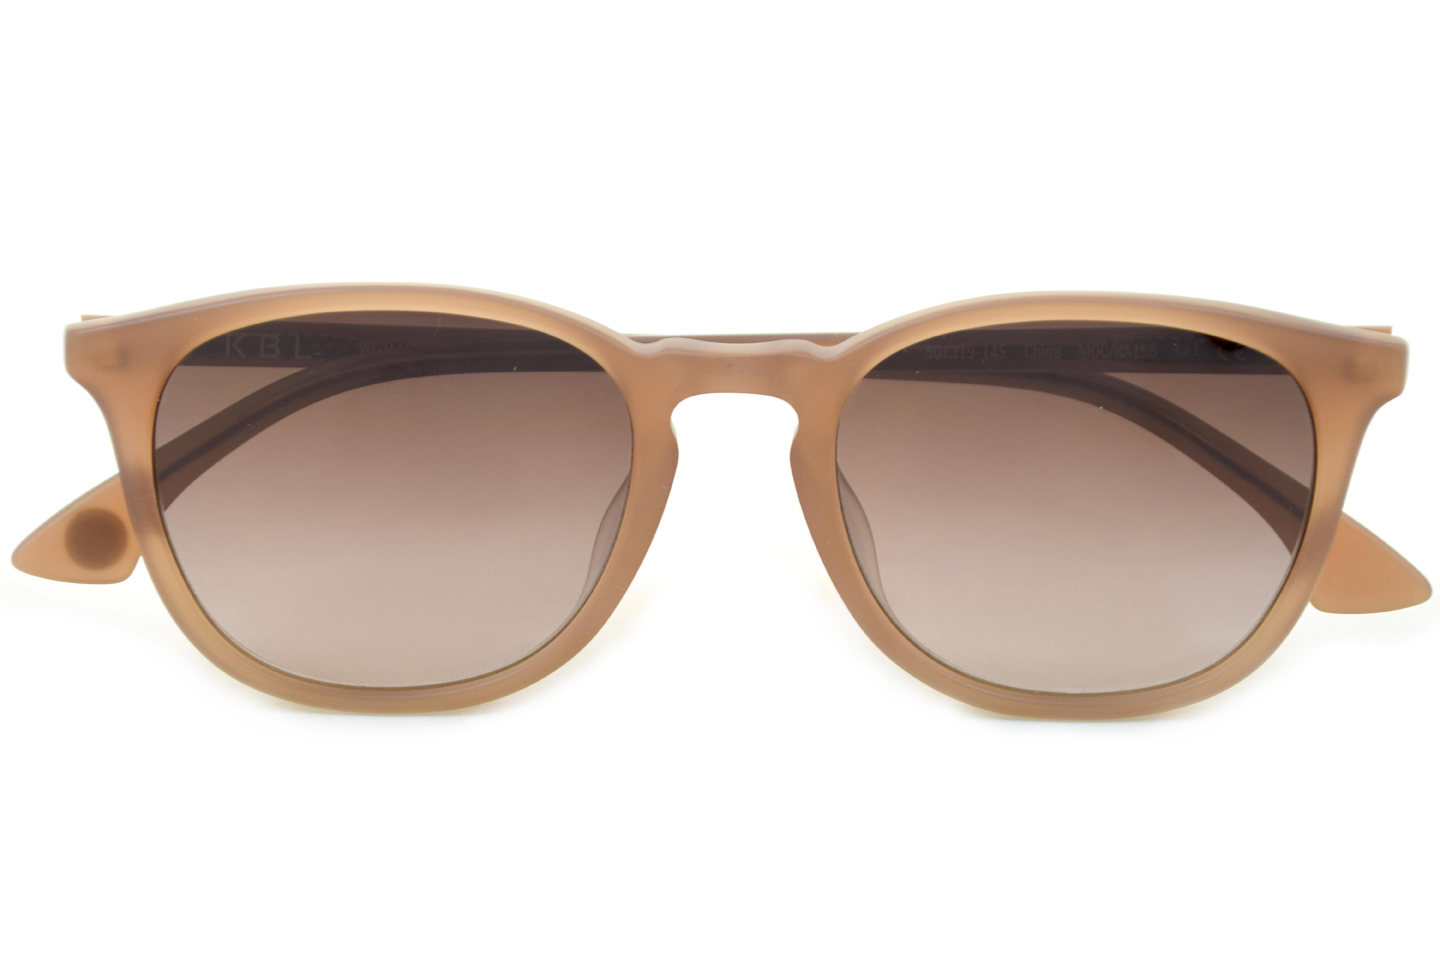 Light taupe coloured sunglasses from KBL eyewear model Wishlist 1.395 d.kr.